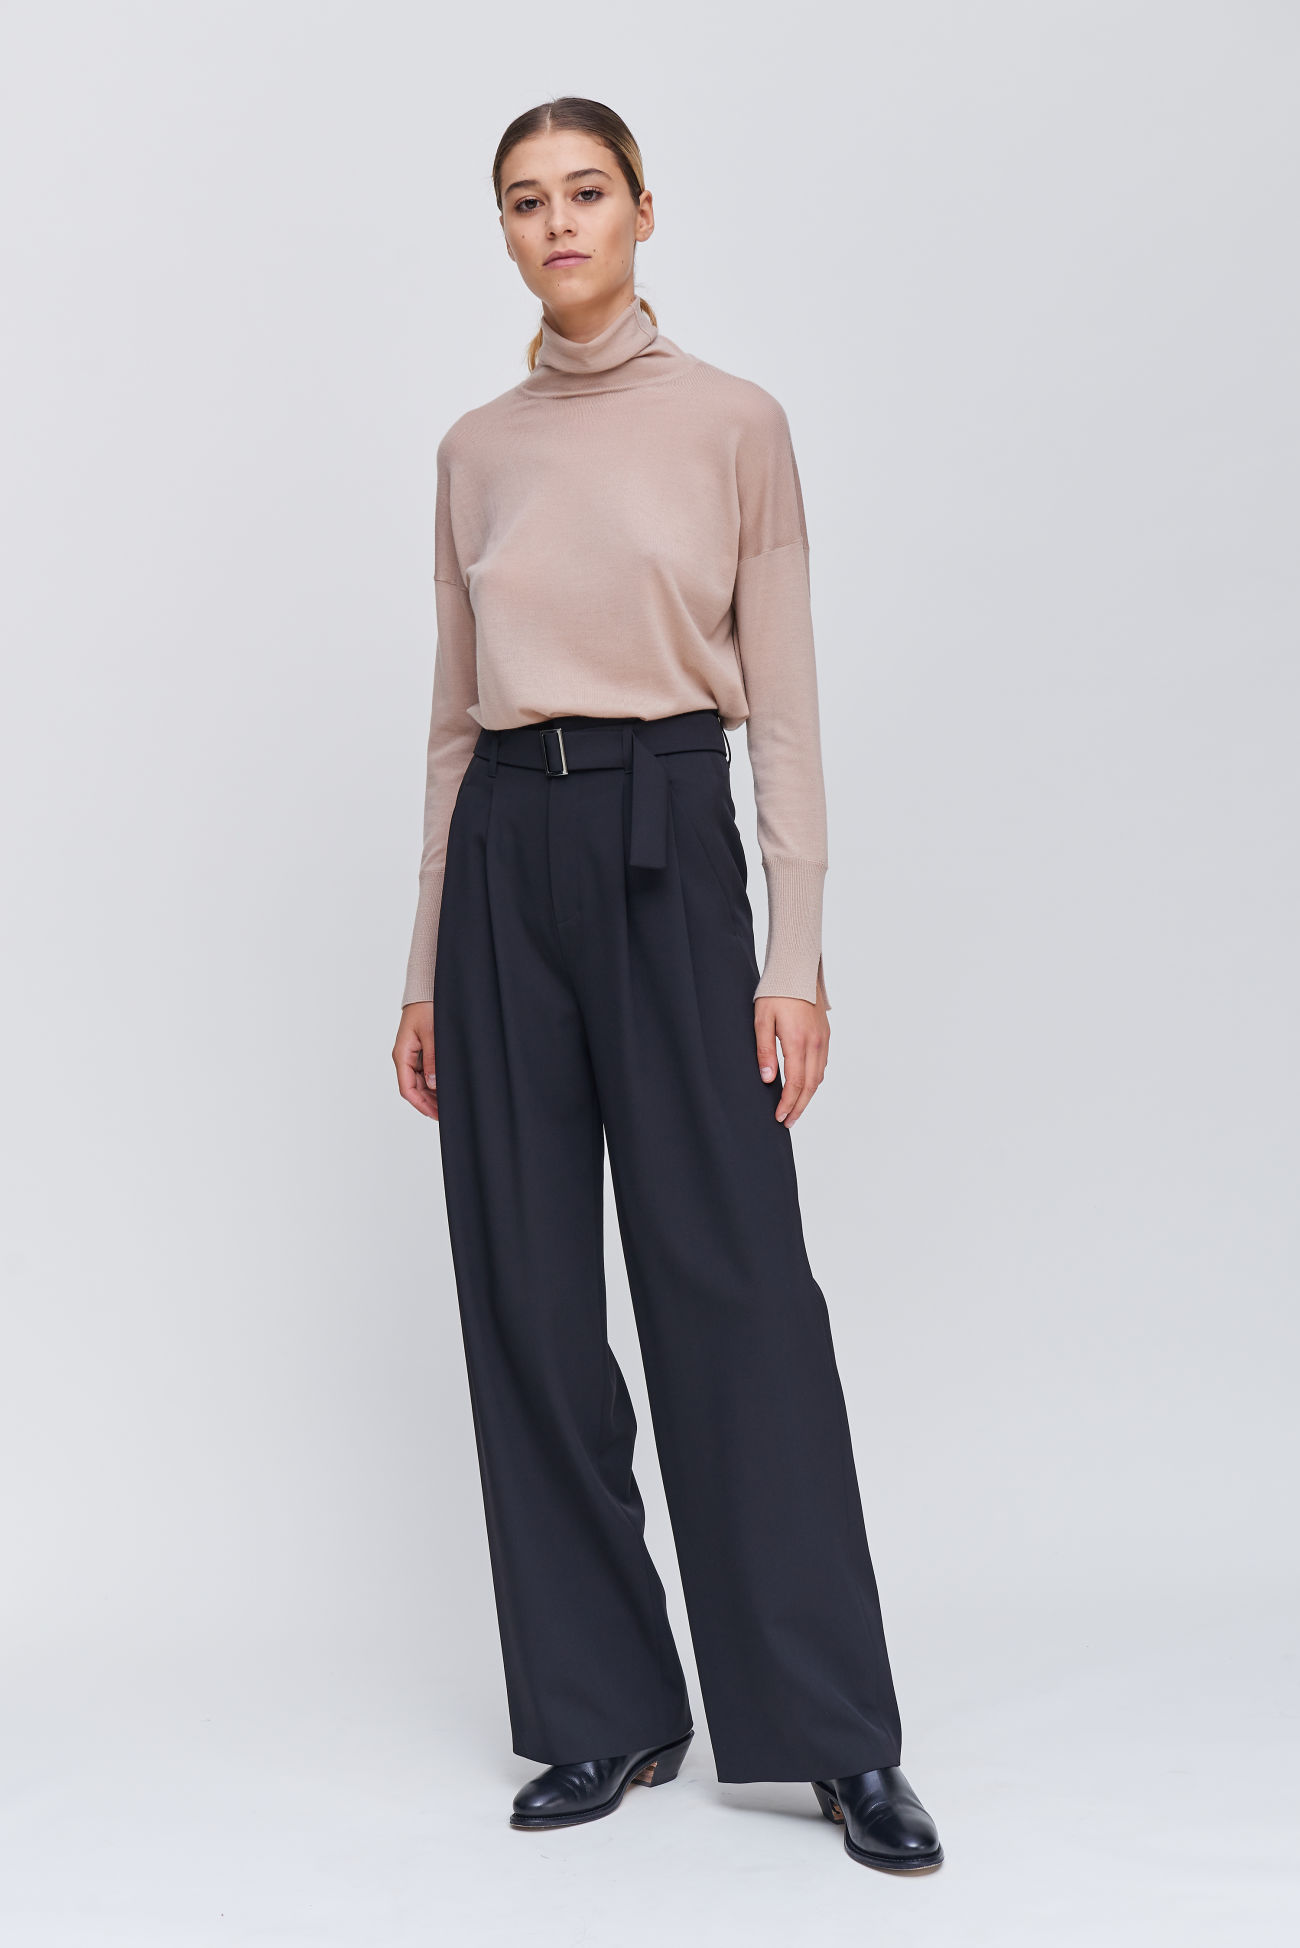 Lambswool trousers